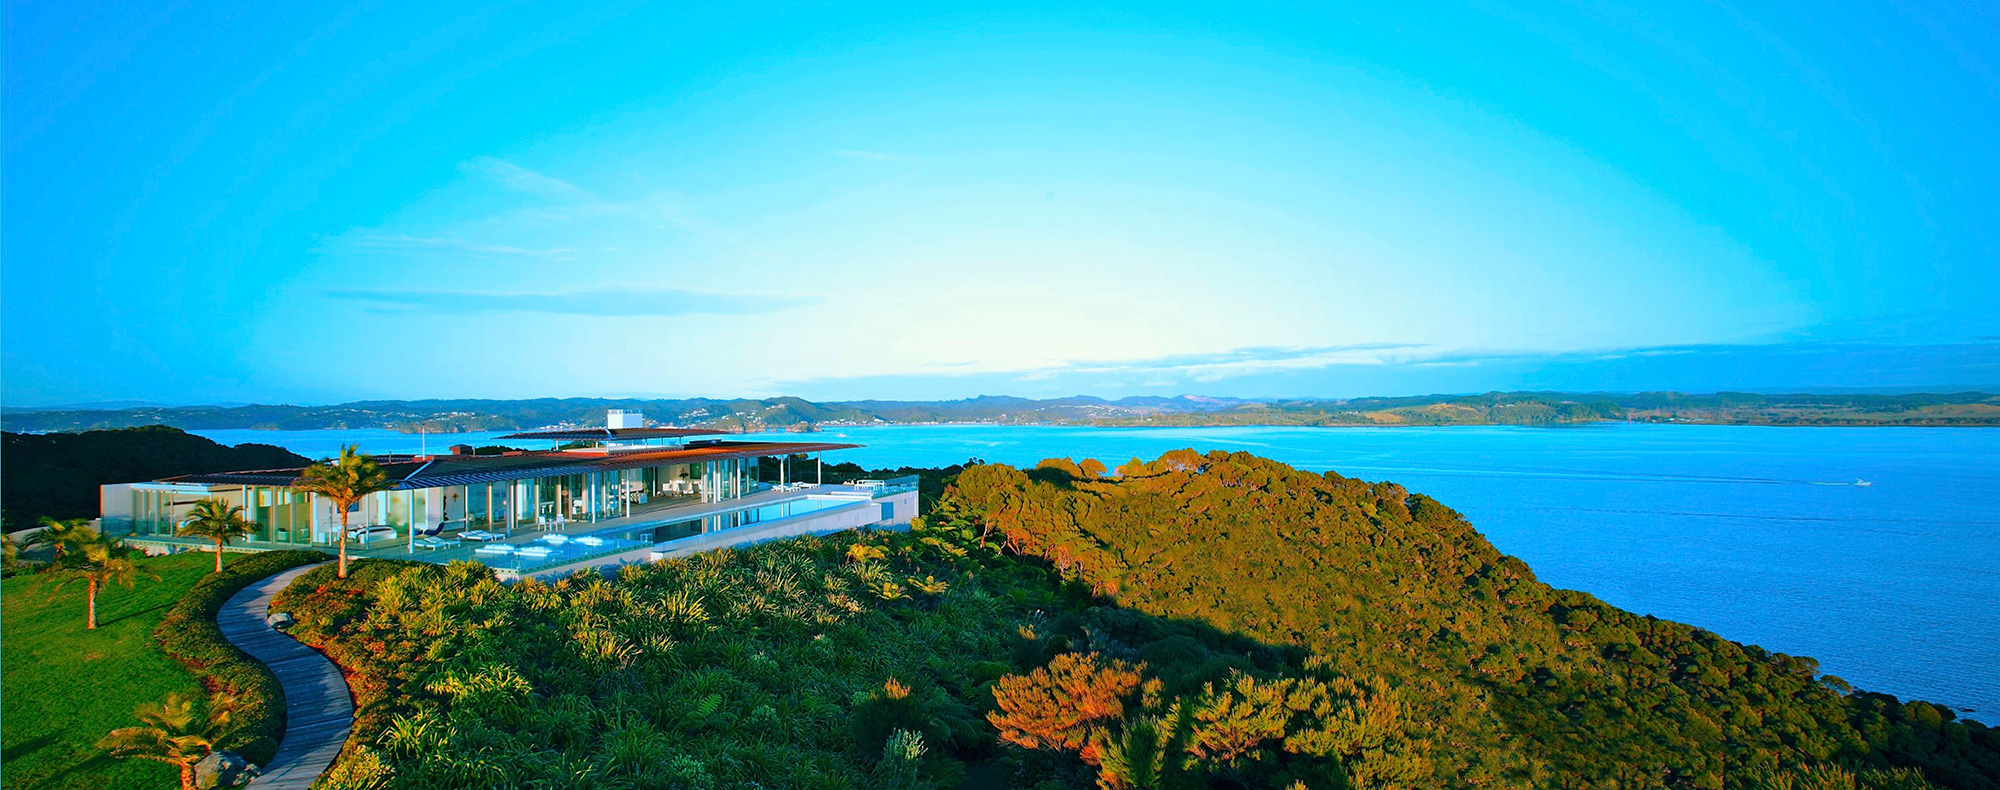 Eagles Nest, Bay Of Islands, New Zealand Vacation, New Zealand, luxury holiday New Zealand, Eagles Nest